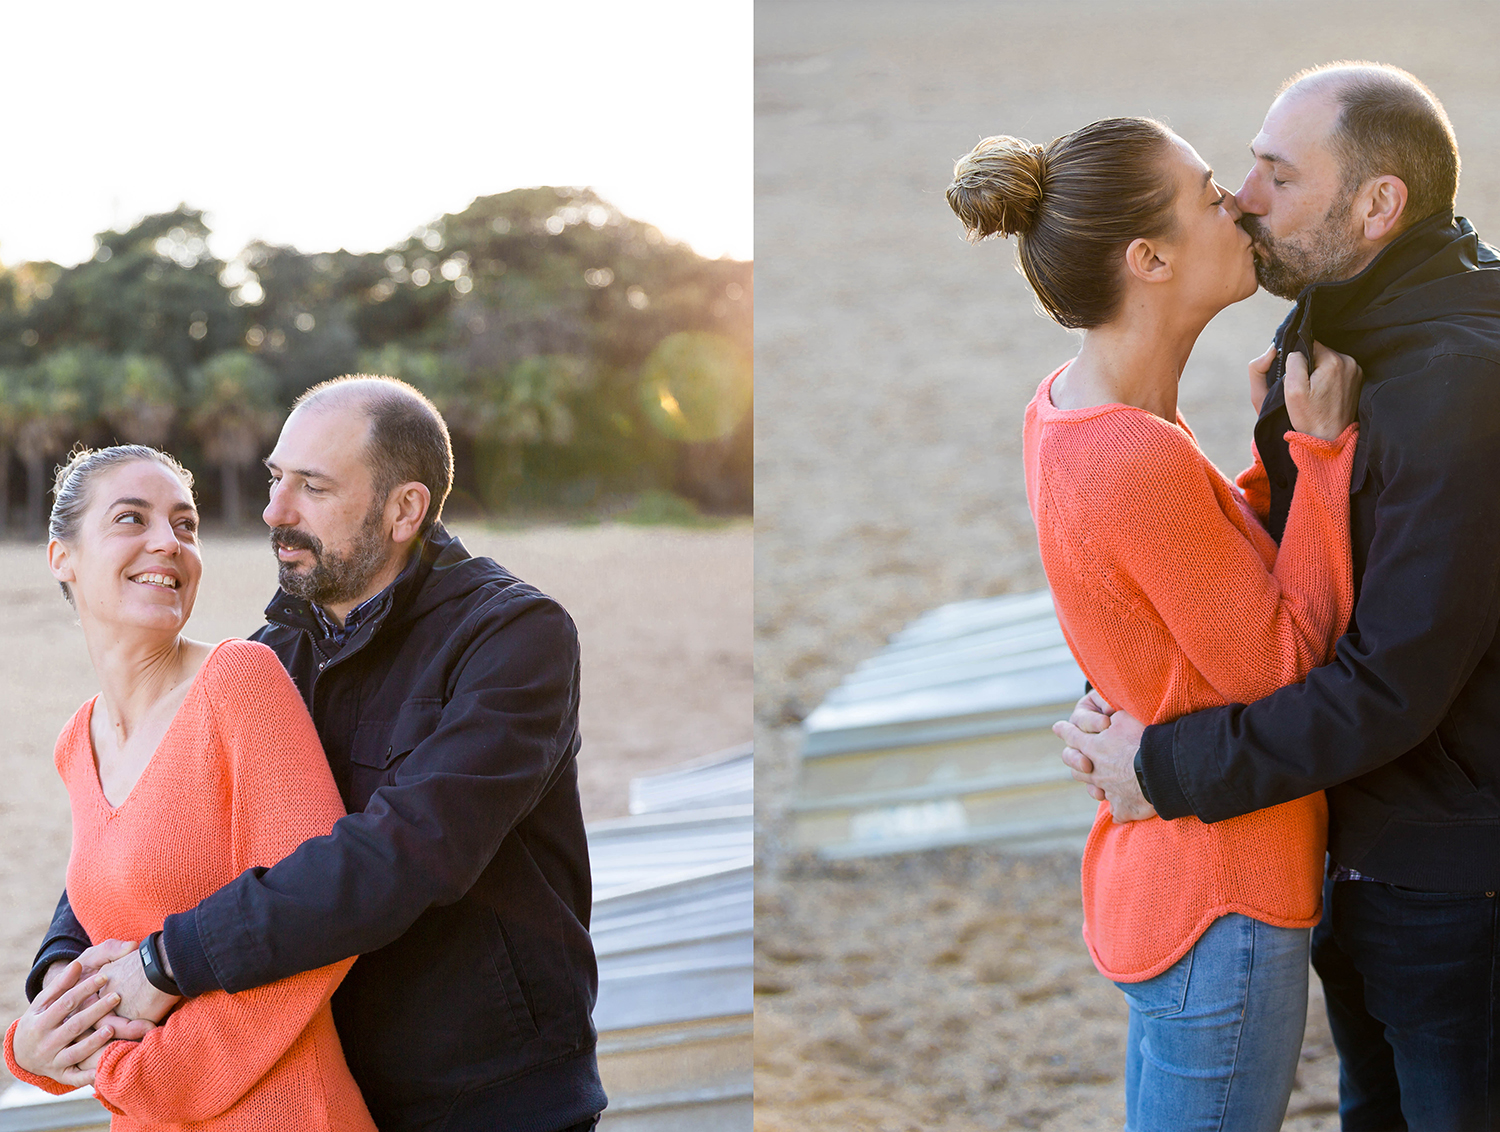 Sydney Pre-Wedding Photo Session - Shelly Beach Manly - Jennifer Lam Photography (14).jpg